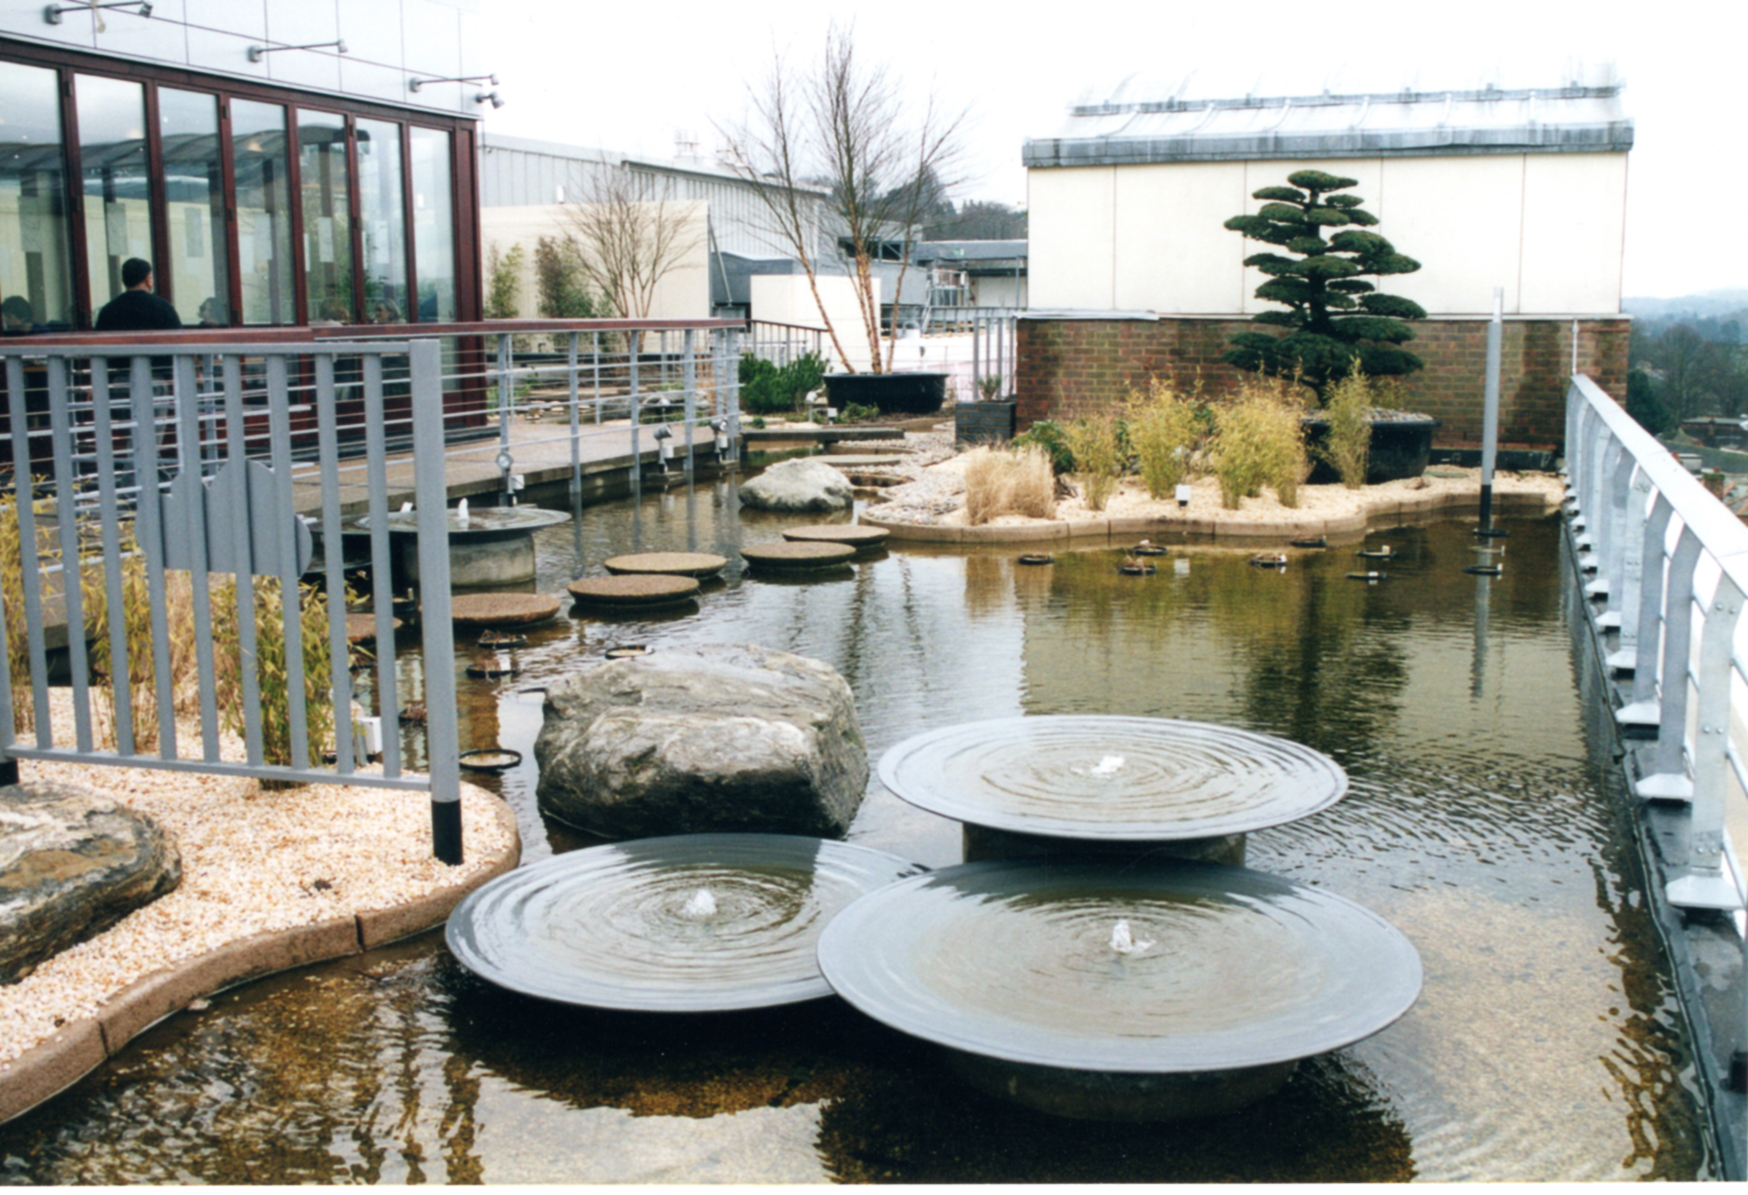 In 2001 after restoration with stepping stones and restored fountains and restaurant to the left